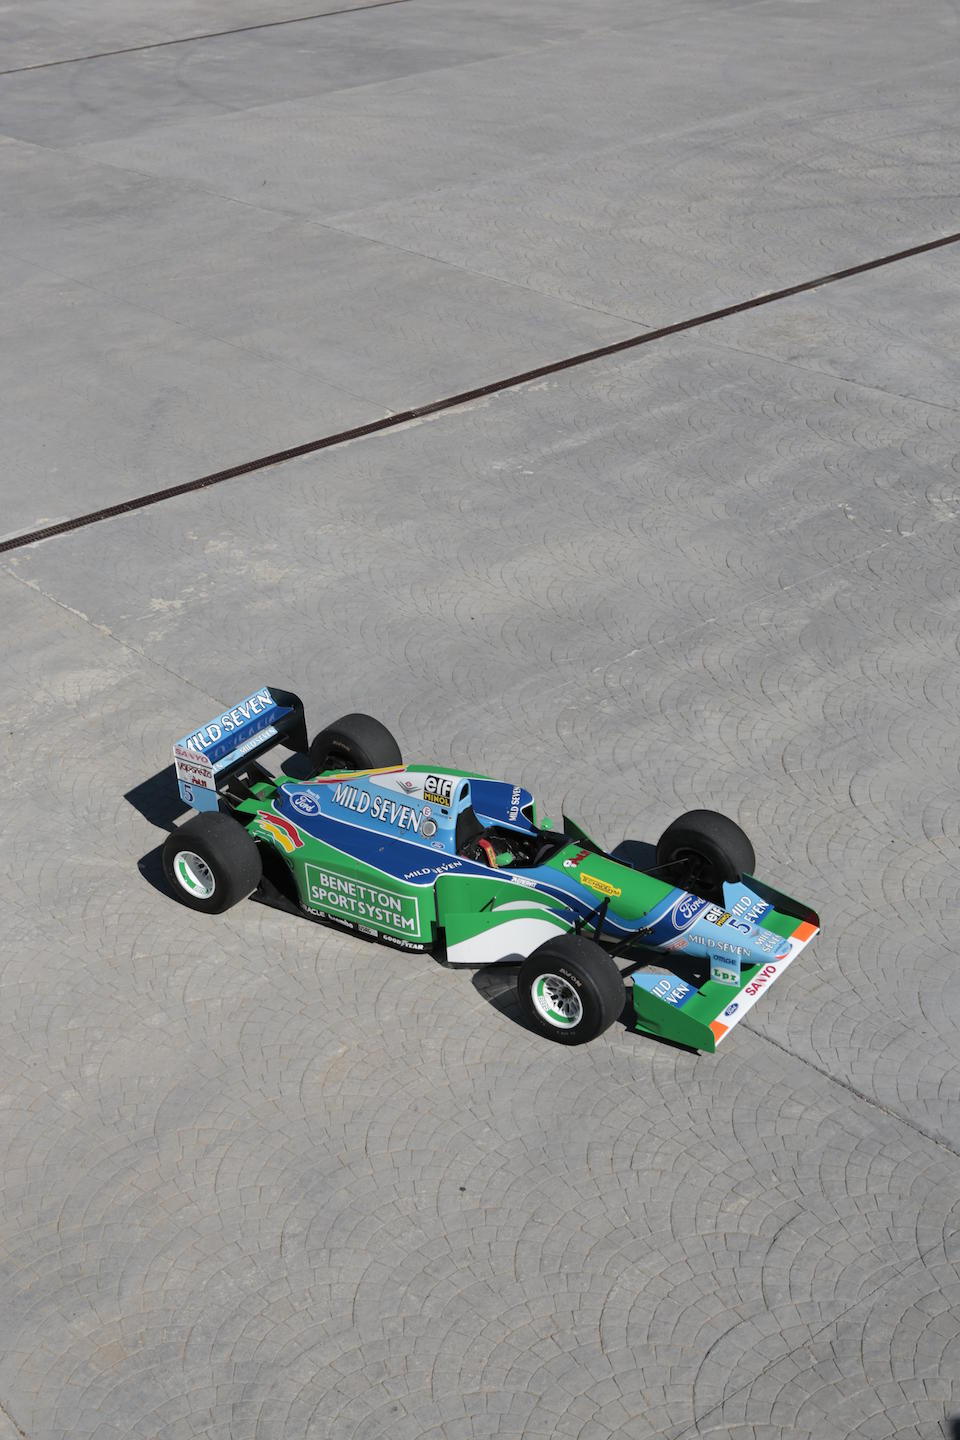 The ex-Michael Schumacher, 1994 FIA Formula 1 World Championship-Winning,Benetton-Cosworth Ford B194 Formula 1 Racing Single-Seater  Chassis no. B194-05